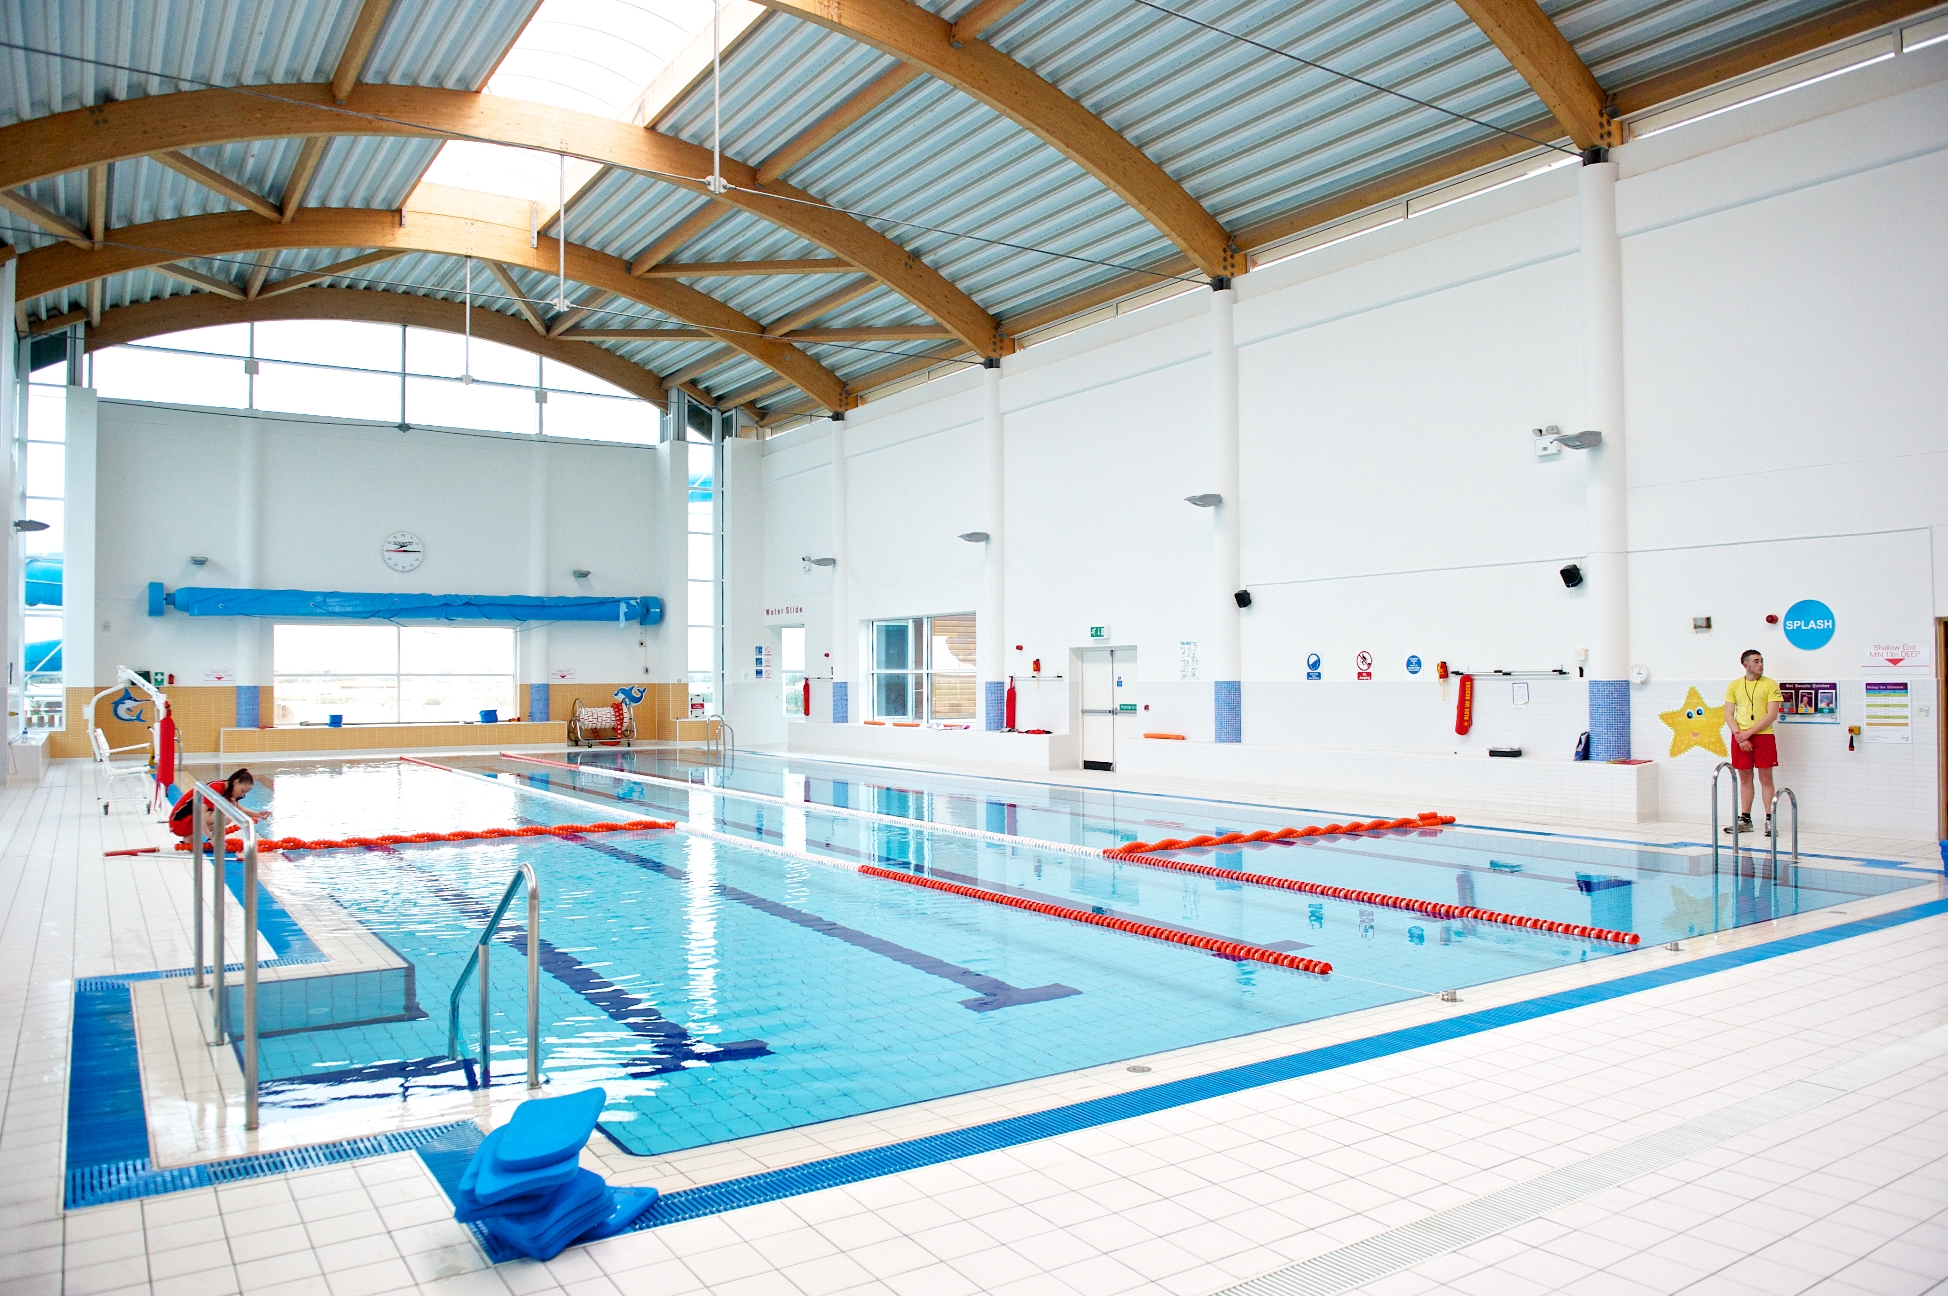 Aura Leisure Centre Youghal